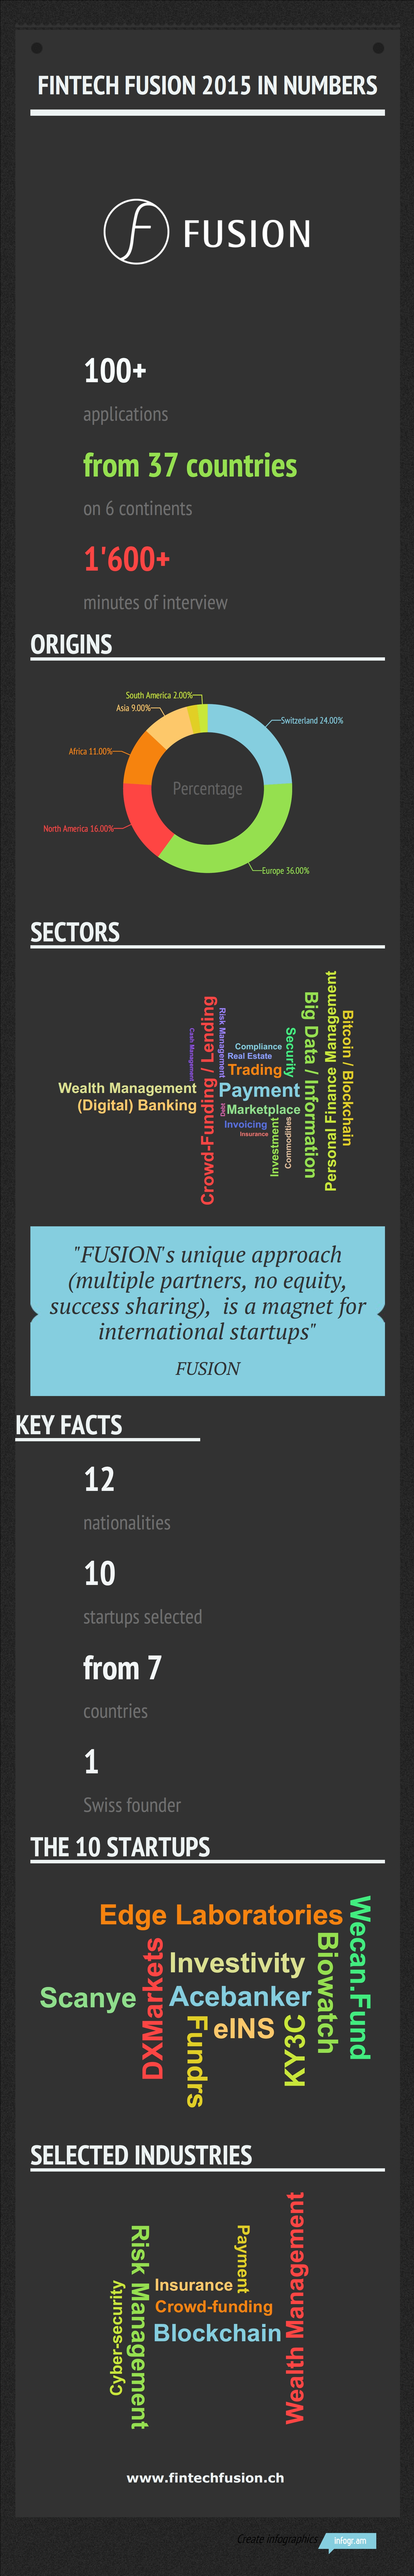 FUSION, Switzerland's first fintech accelerator, selects its first intake